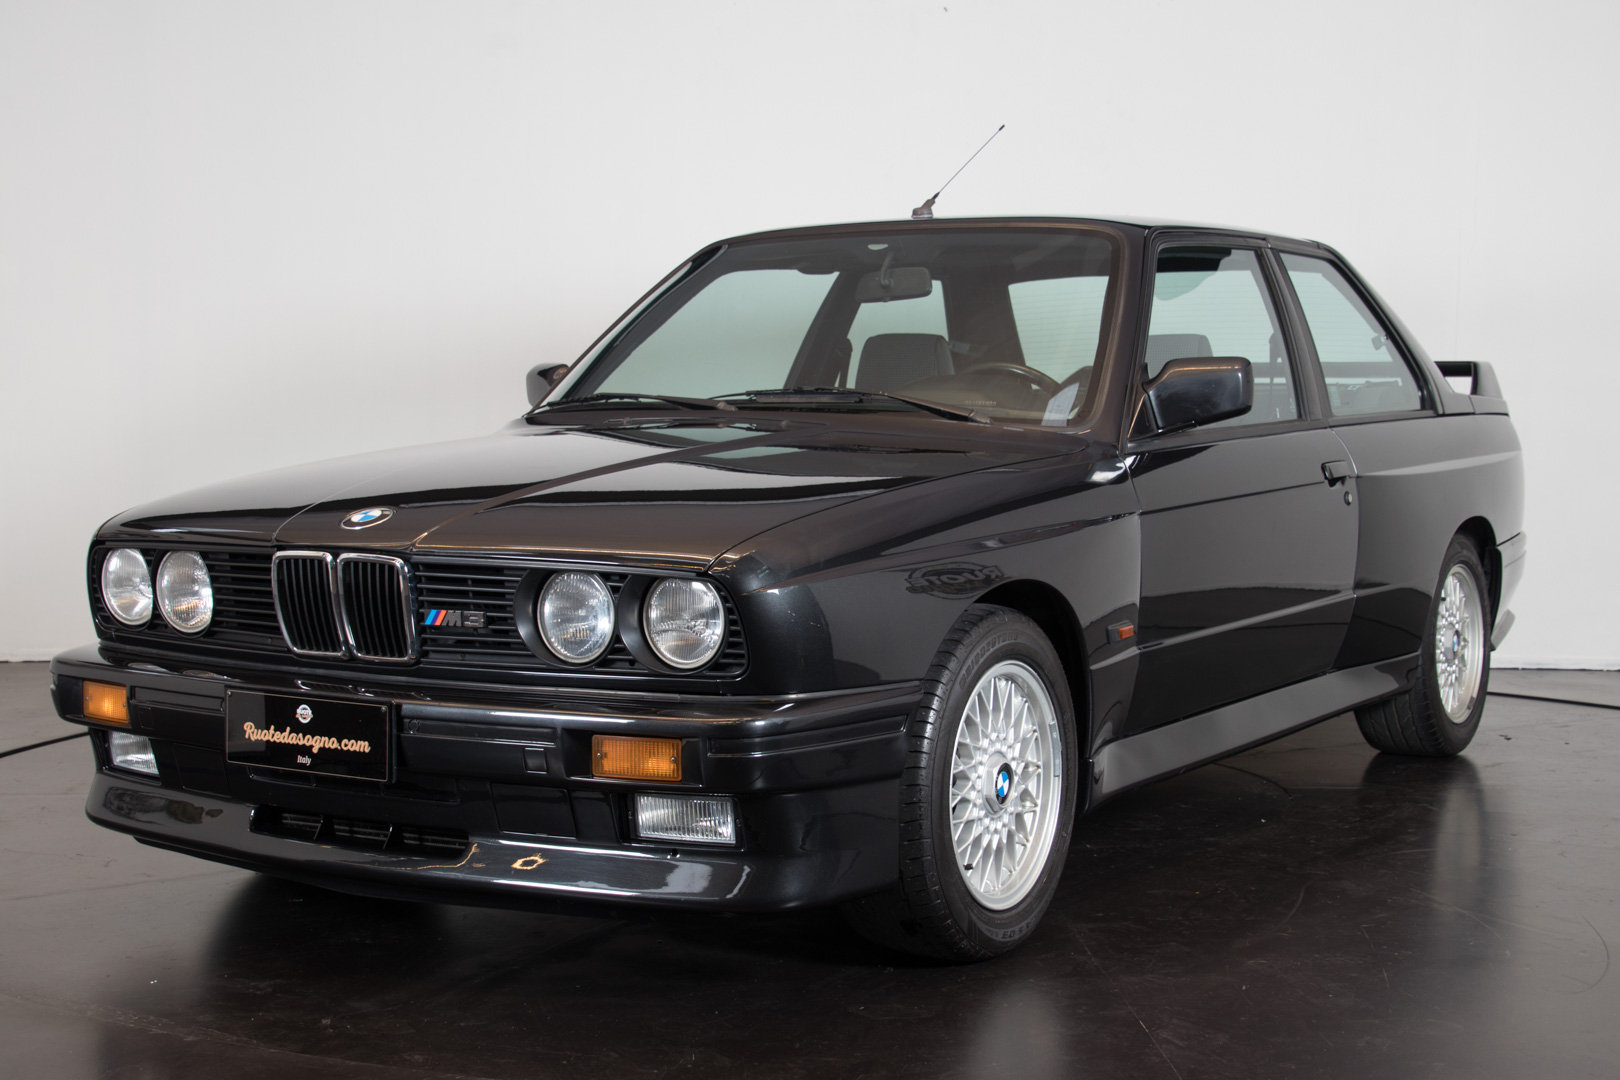 1986 Bmw M3 e30 For Sale (picture 1 of 6)